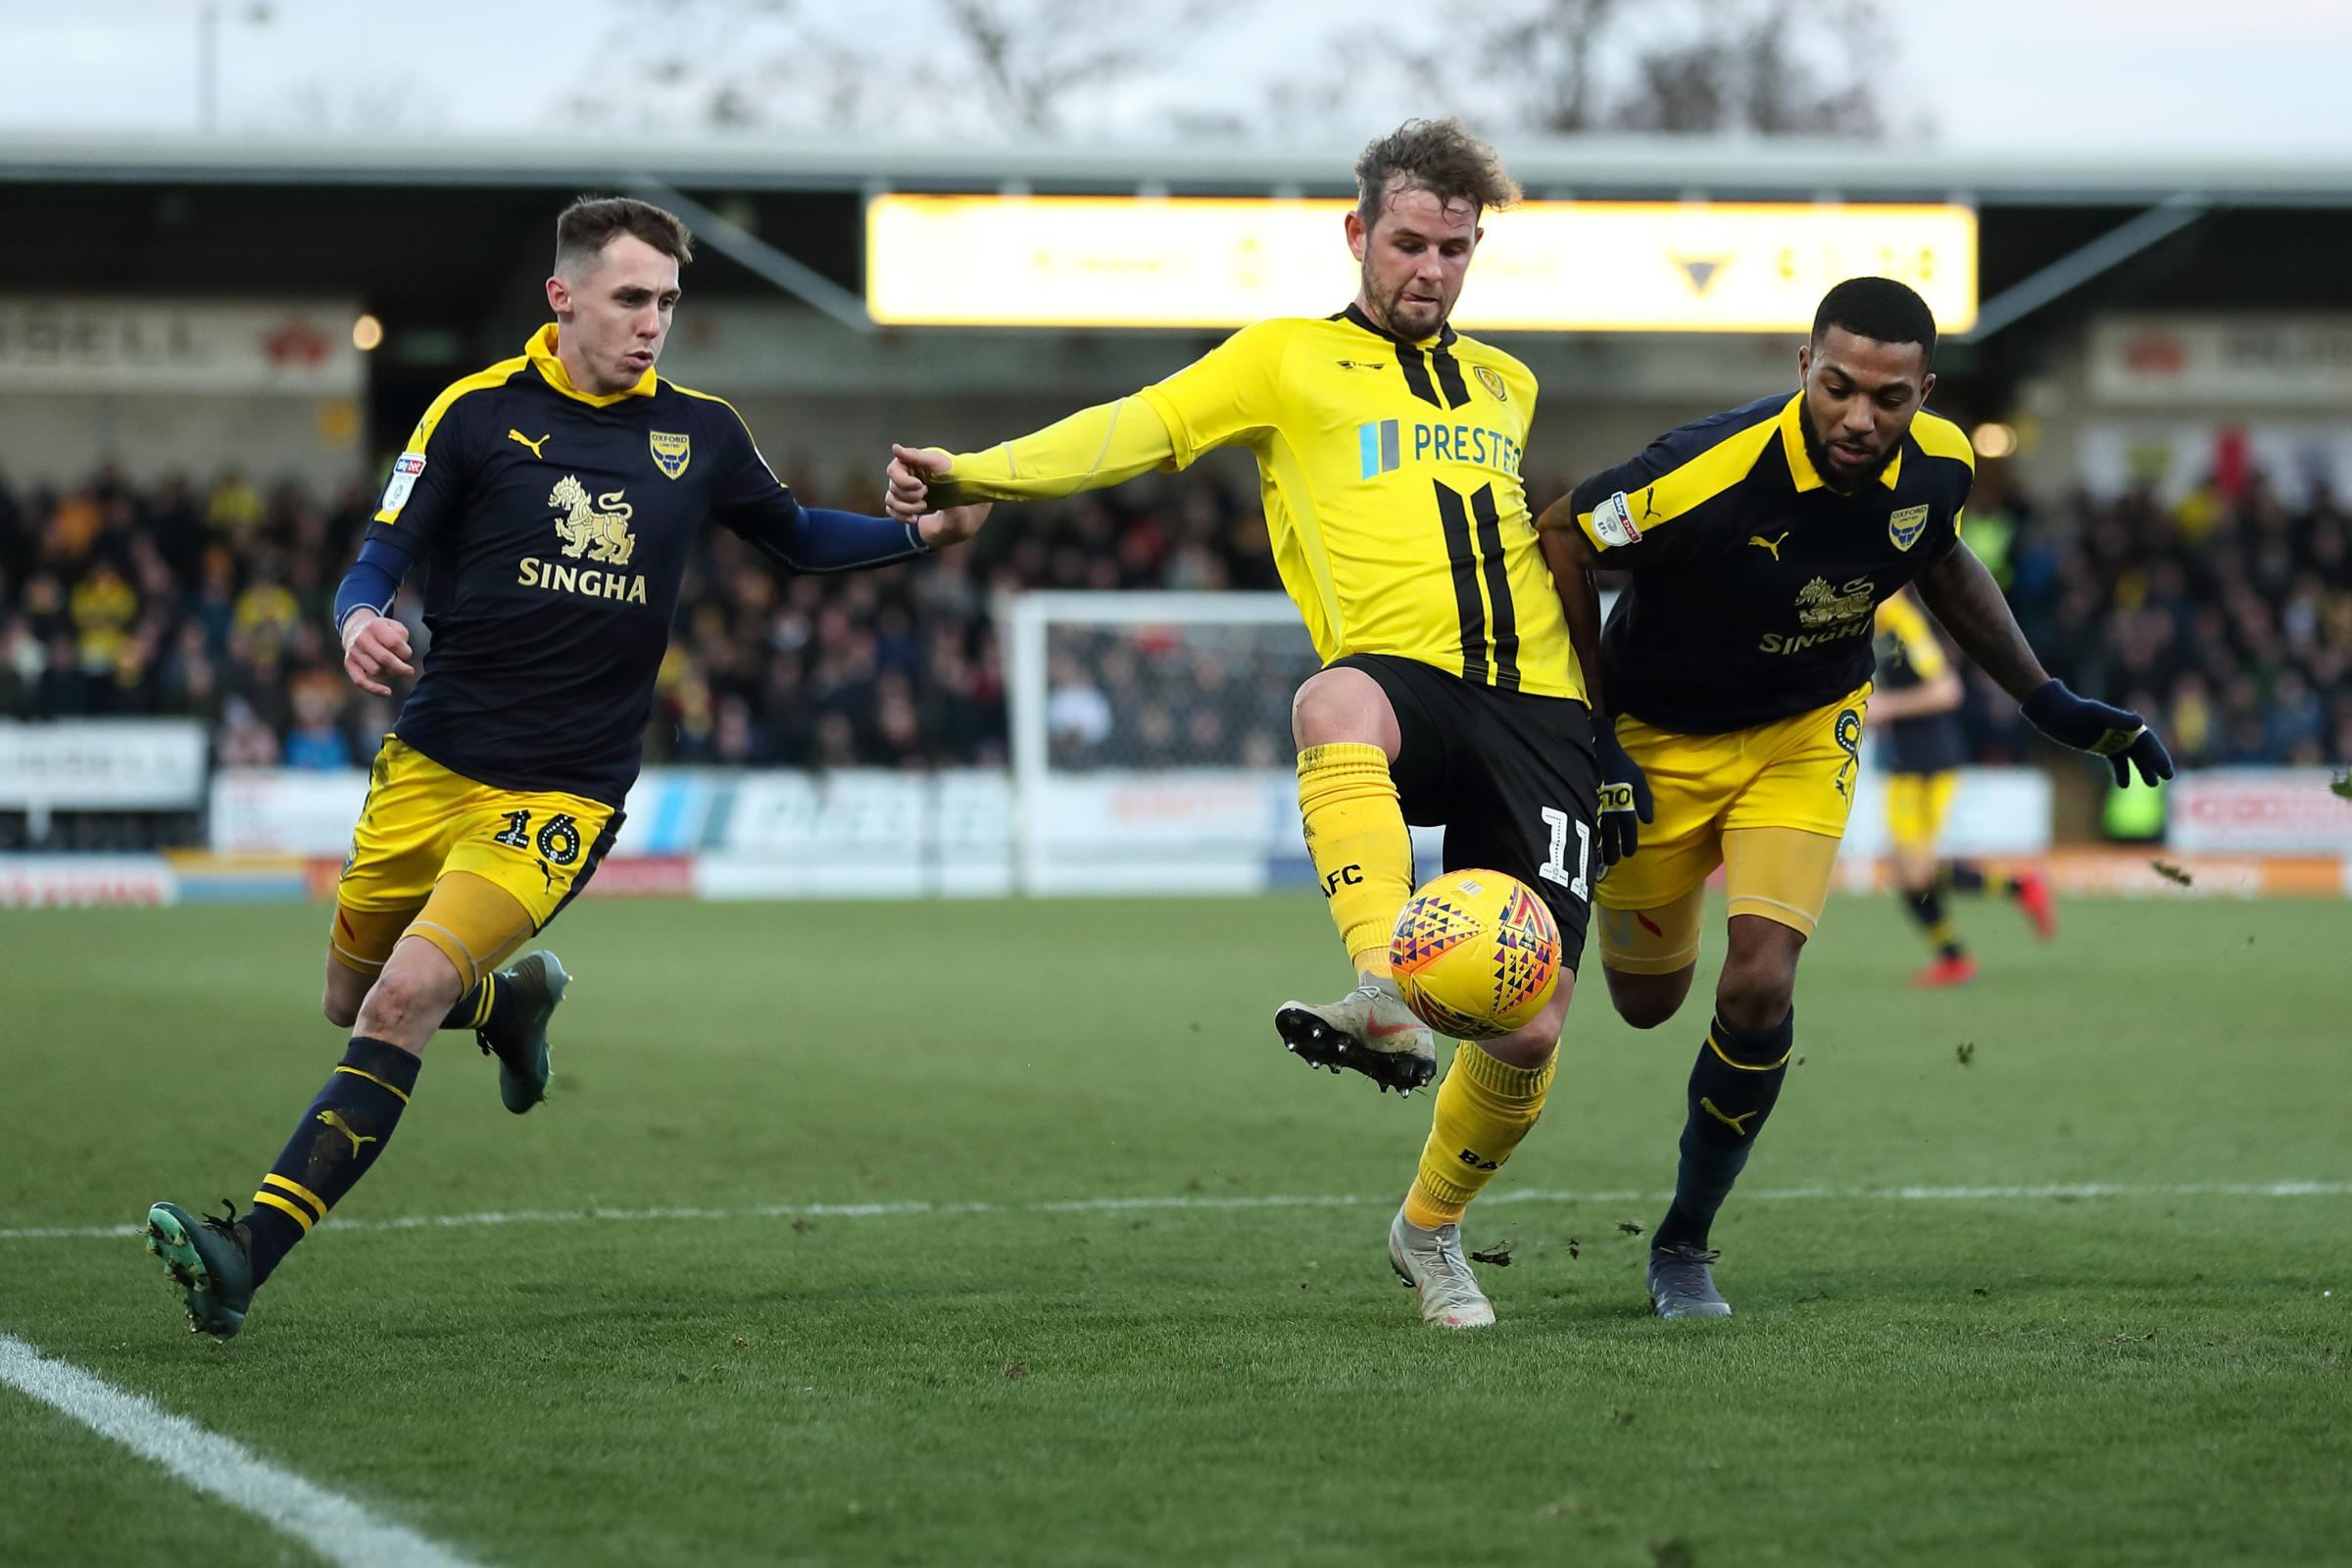 Gavin Whyte (left) and Jerome Sinclair (right) put the pressure on during their goalless draw at Burton Albion last month        Picture: James Williamson